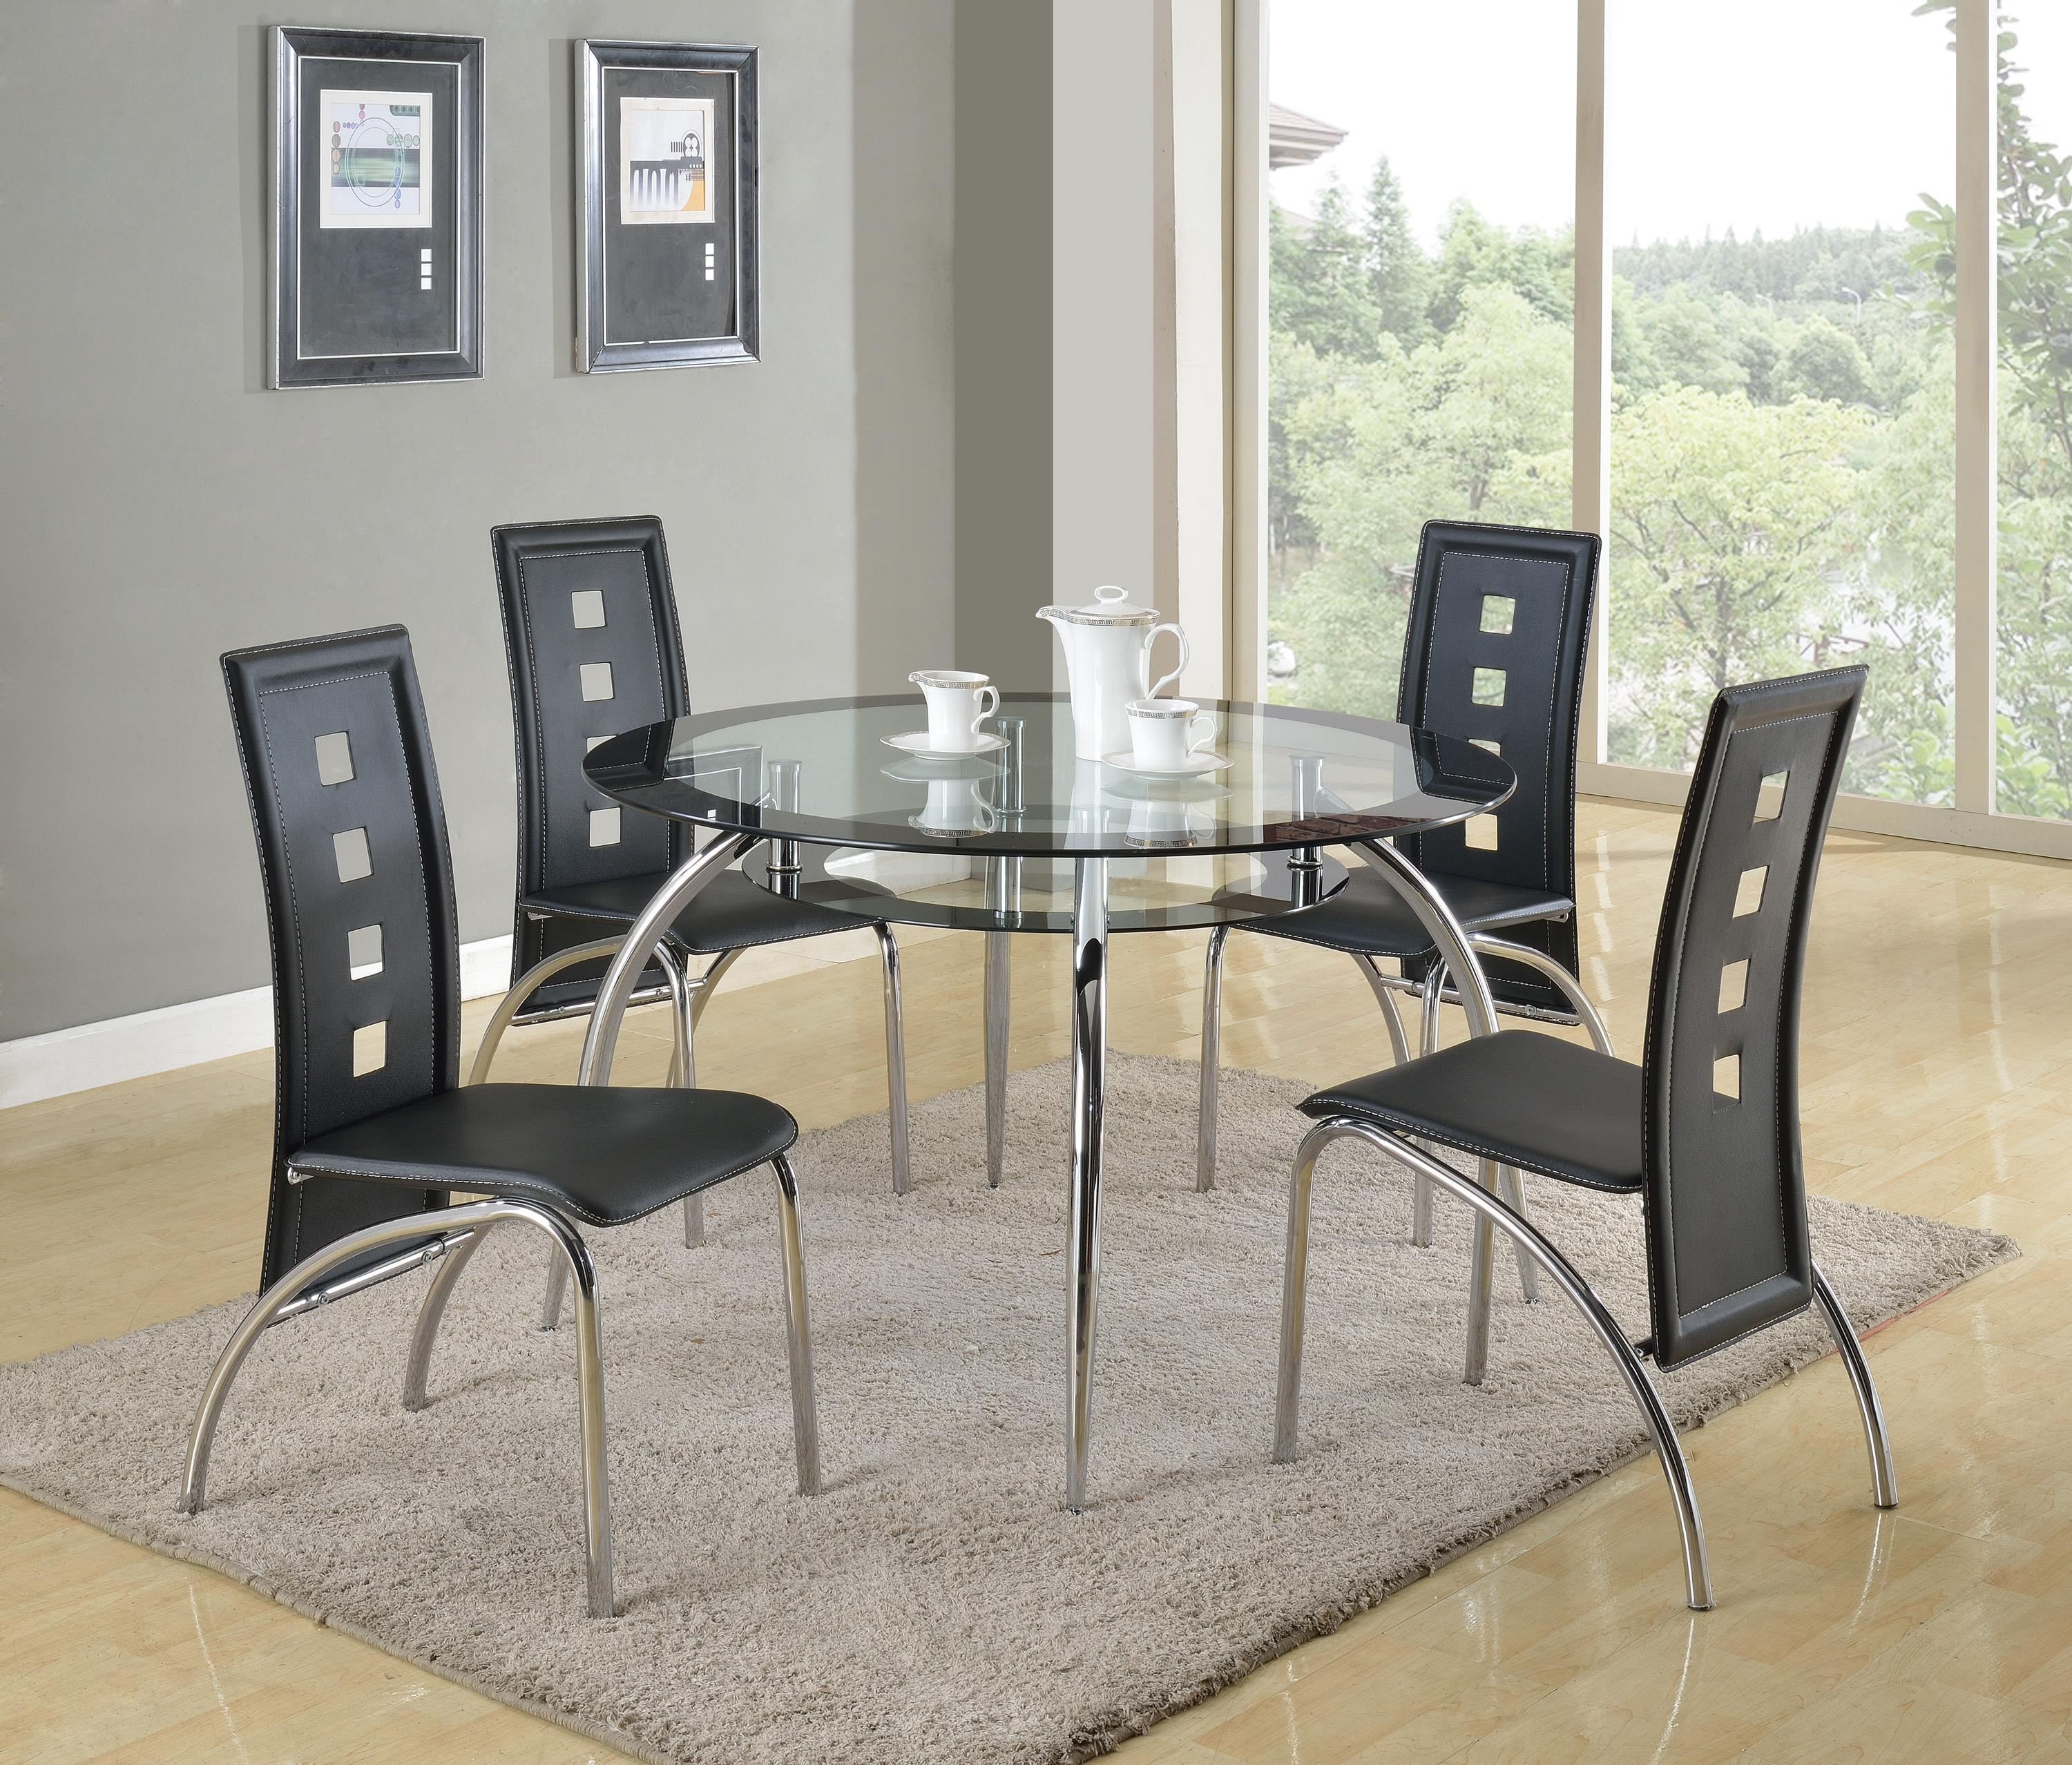 Shop Saddle Brown Round Kitchen Table And 4 Kitchen Chairs: Crown Mark Mila Round Glass Dining Table With Suspended